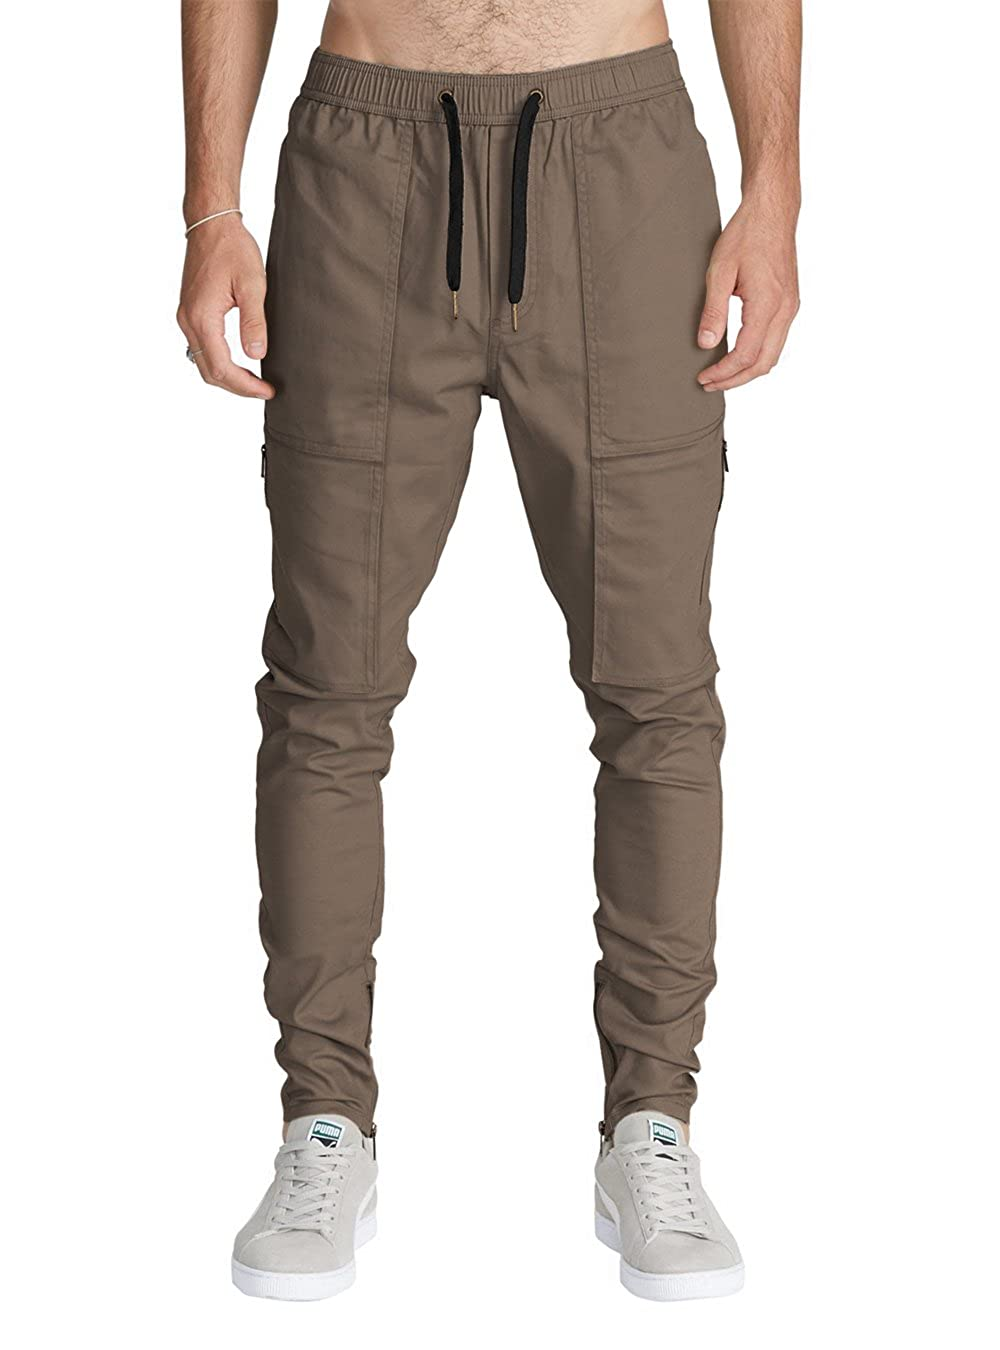 ITALY MORN Men's Chino Cargo Pants Slim Fit Ankle Zipper 17CIT001